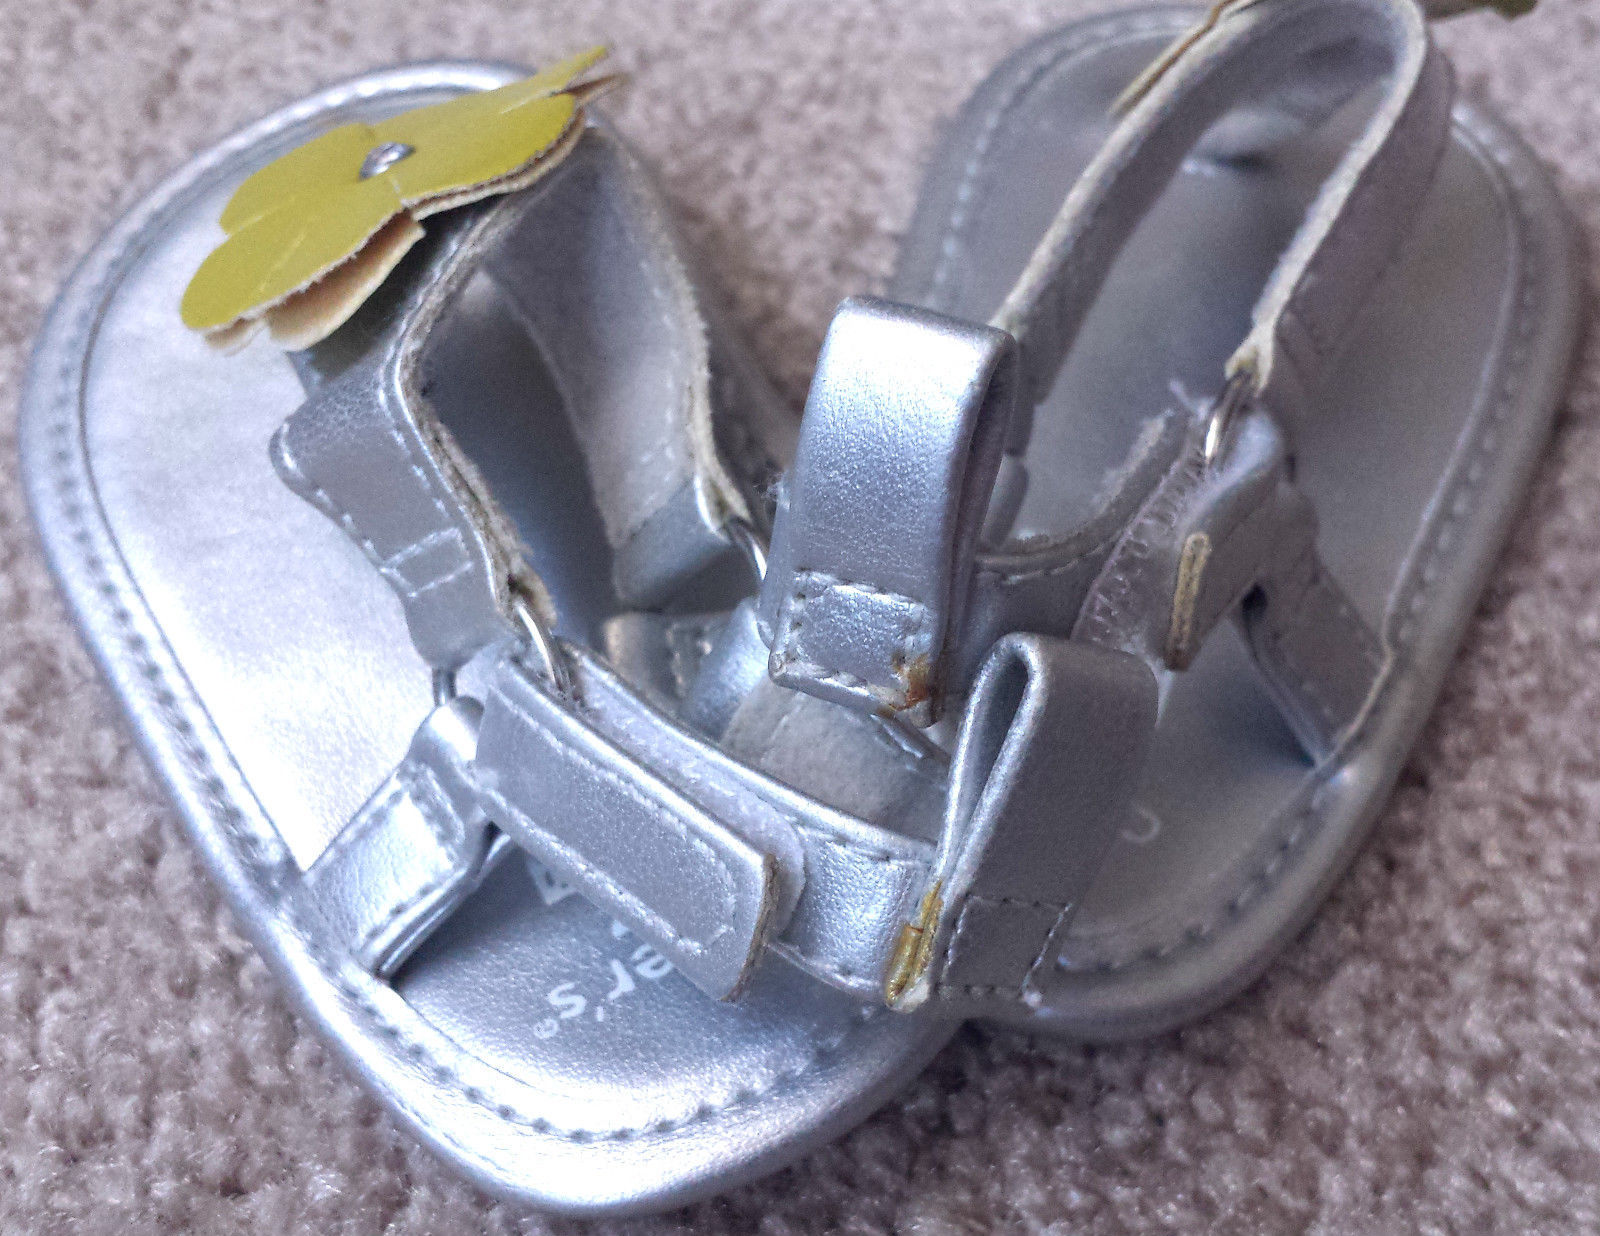 Baby Girl's Size 1 Carter's Silver Sandals Yellow Floral Designed W/ Rhinestones